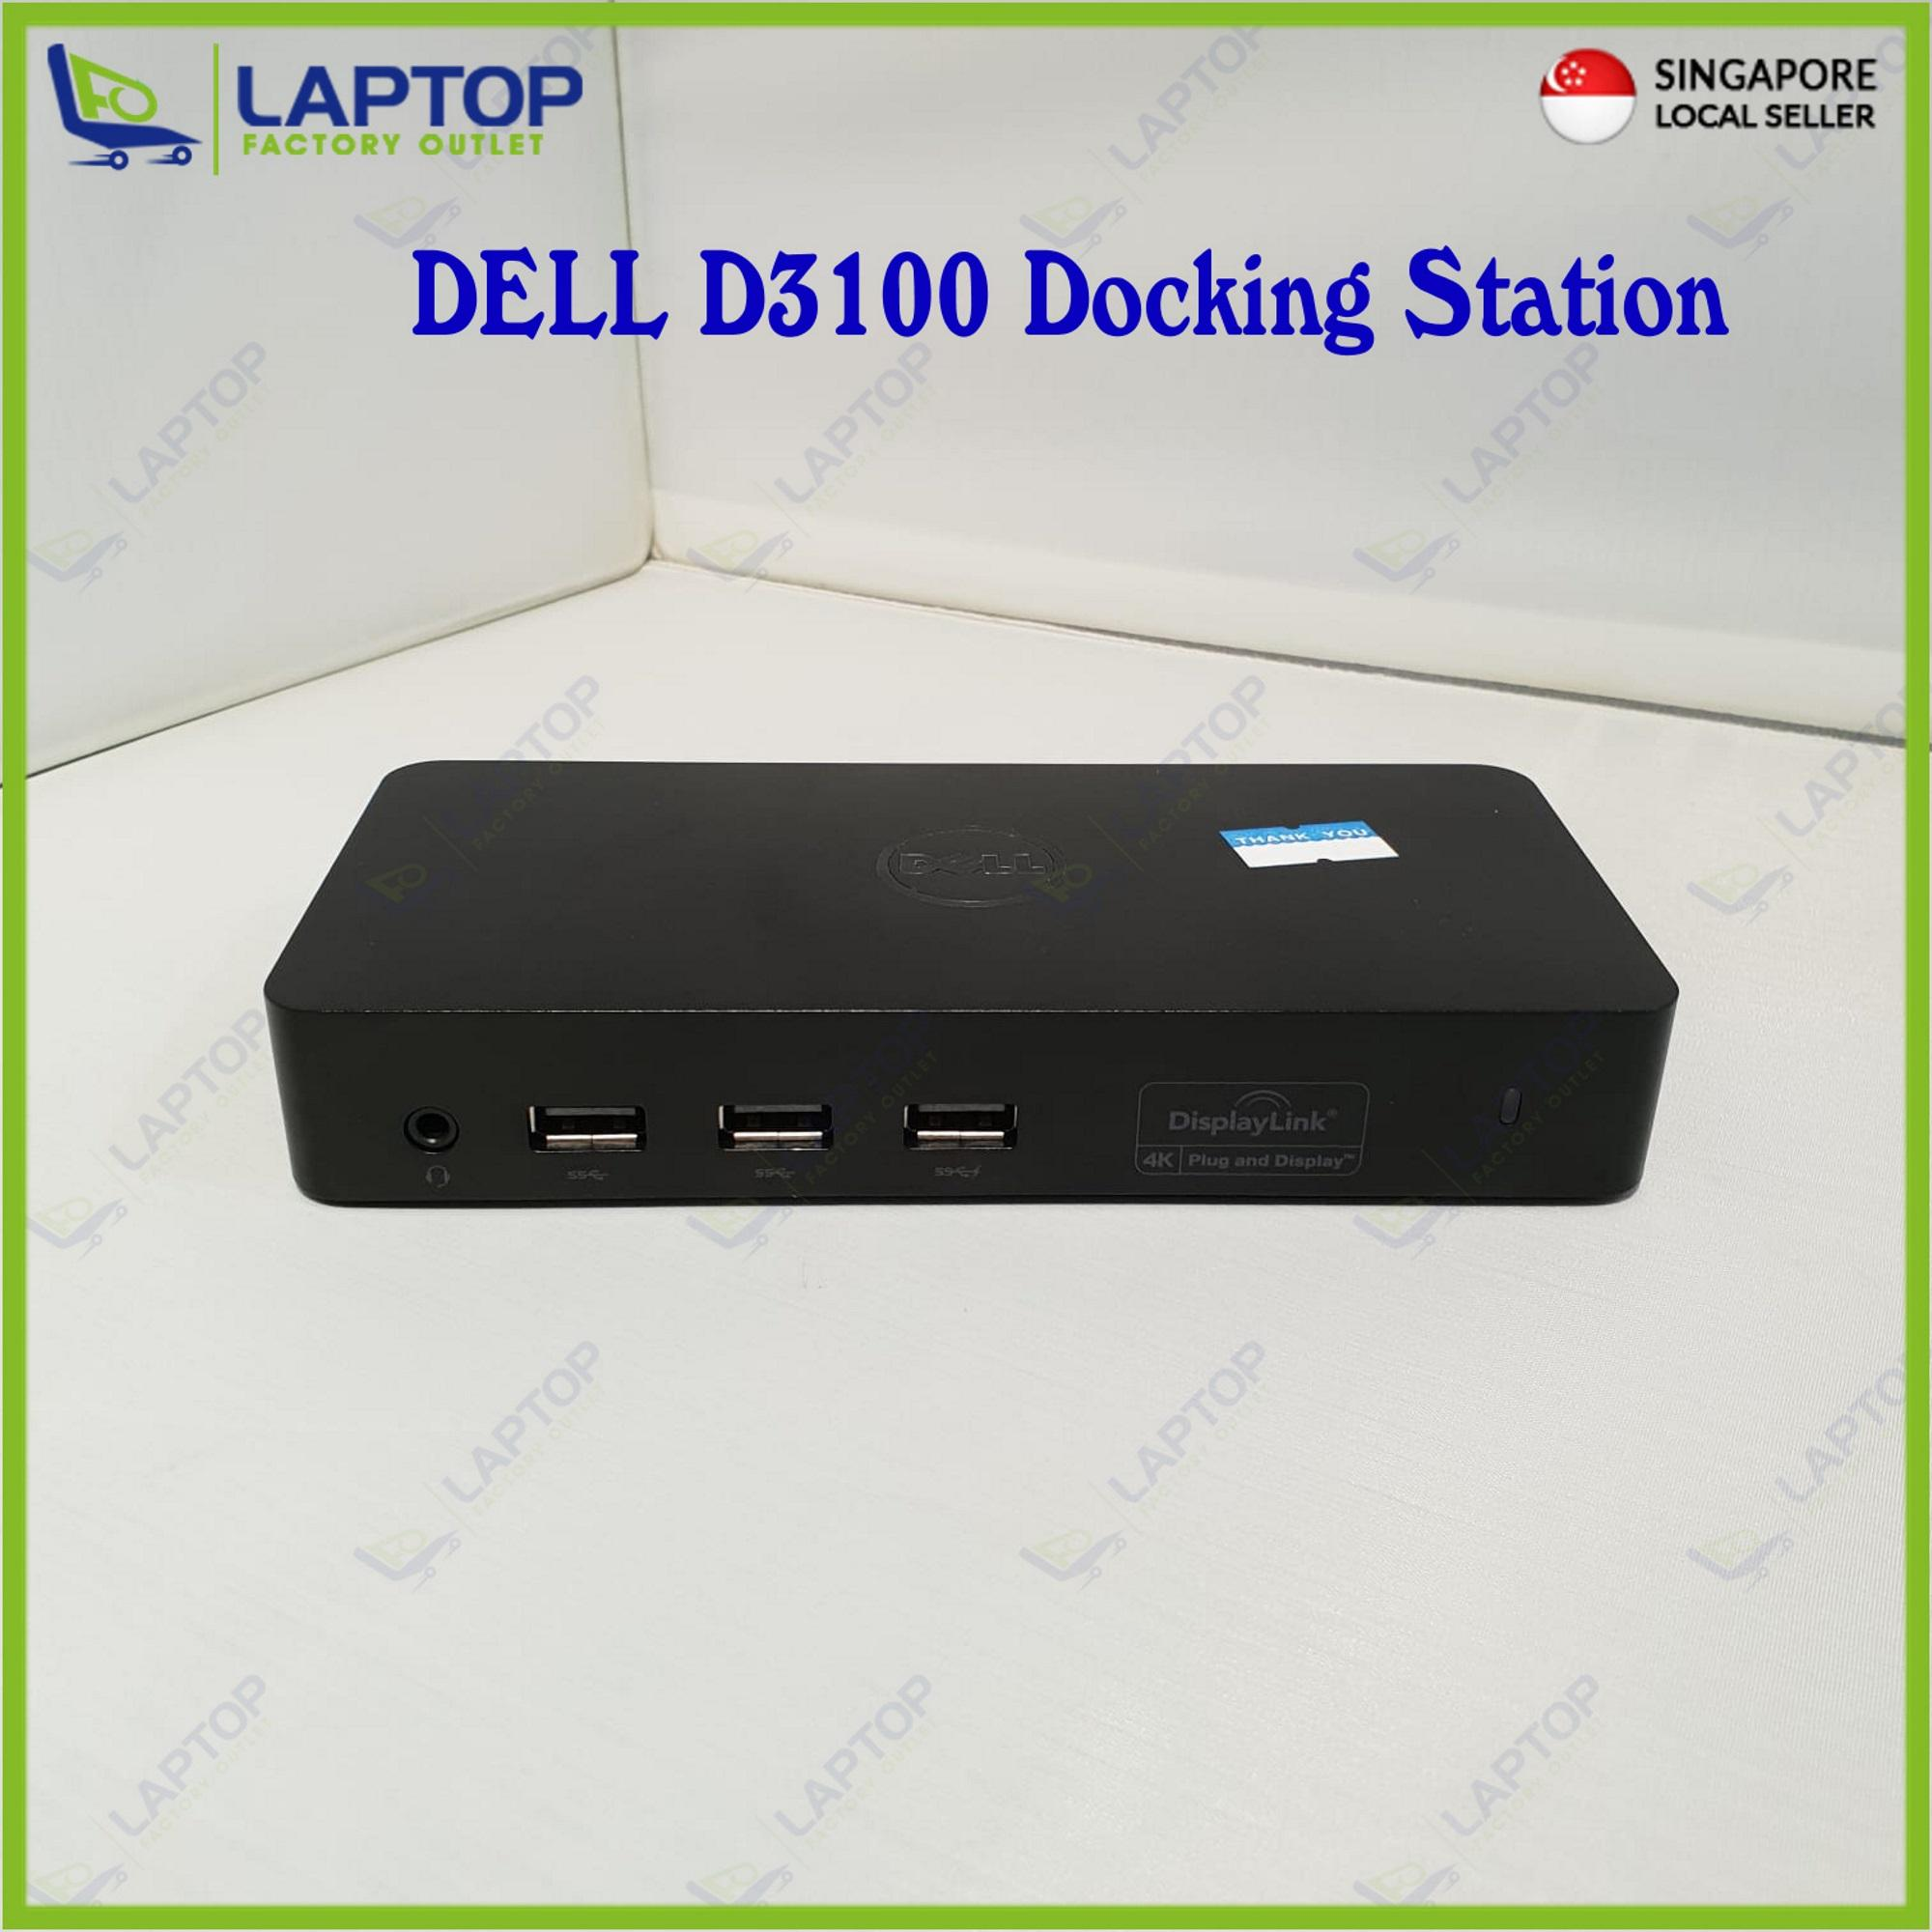 DELL D3100 Docking Station @Deal Clearance@ Preowned [Refurbished]